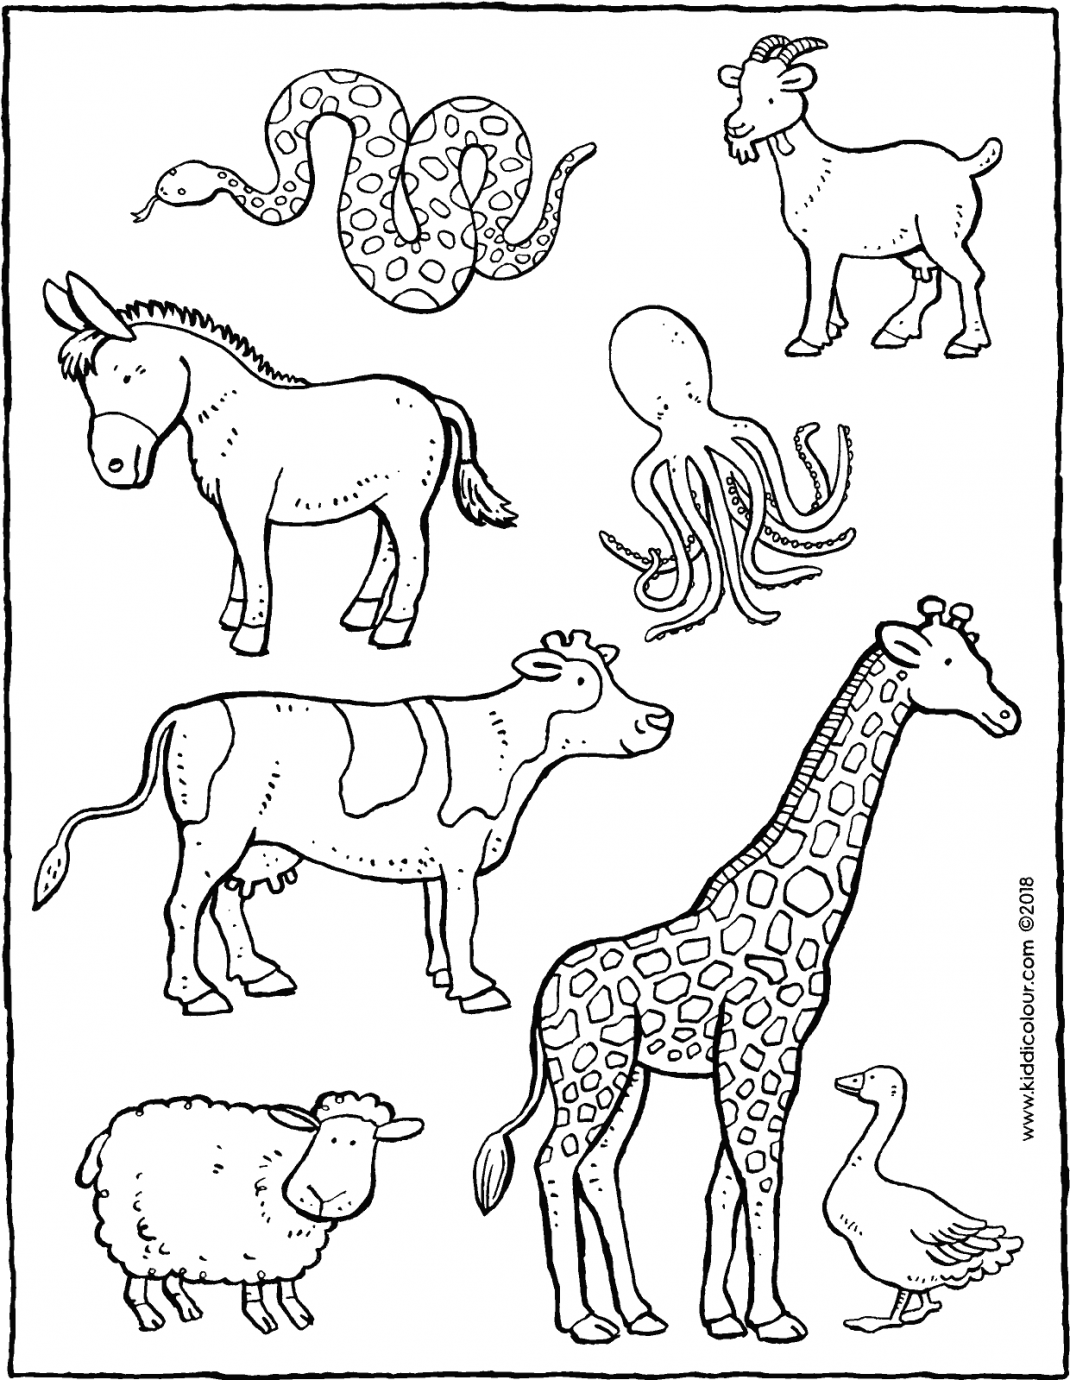 find the animals on the farm colouring page drawing picture 01V